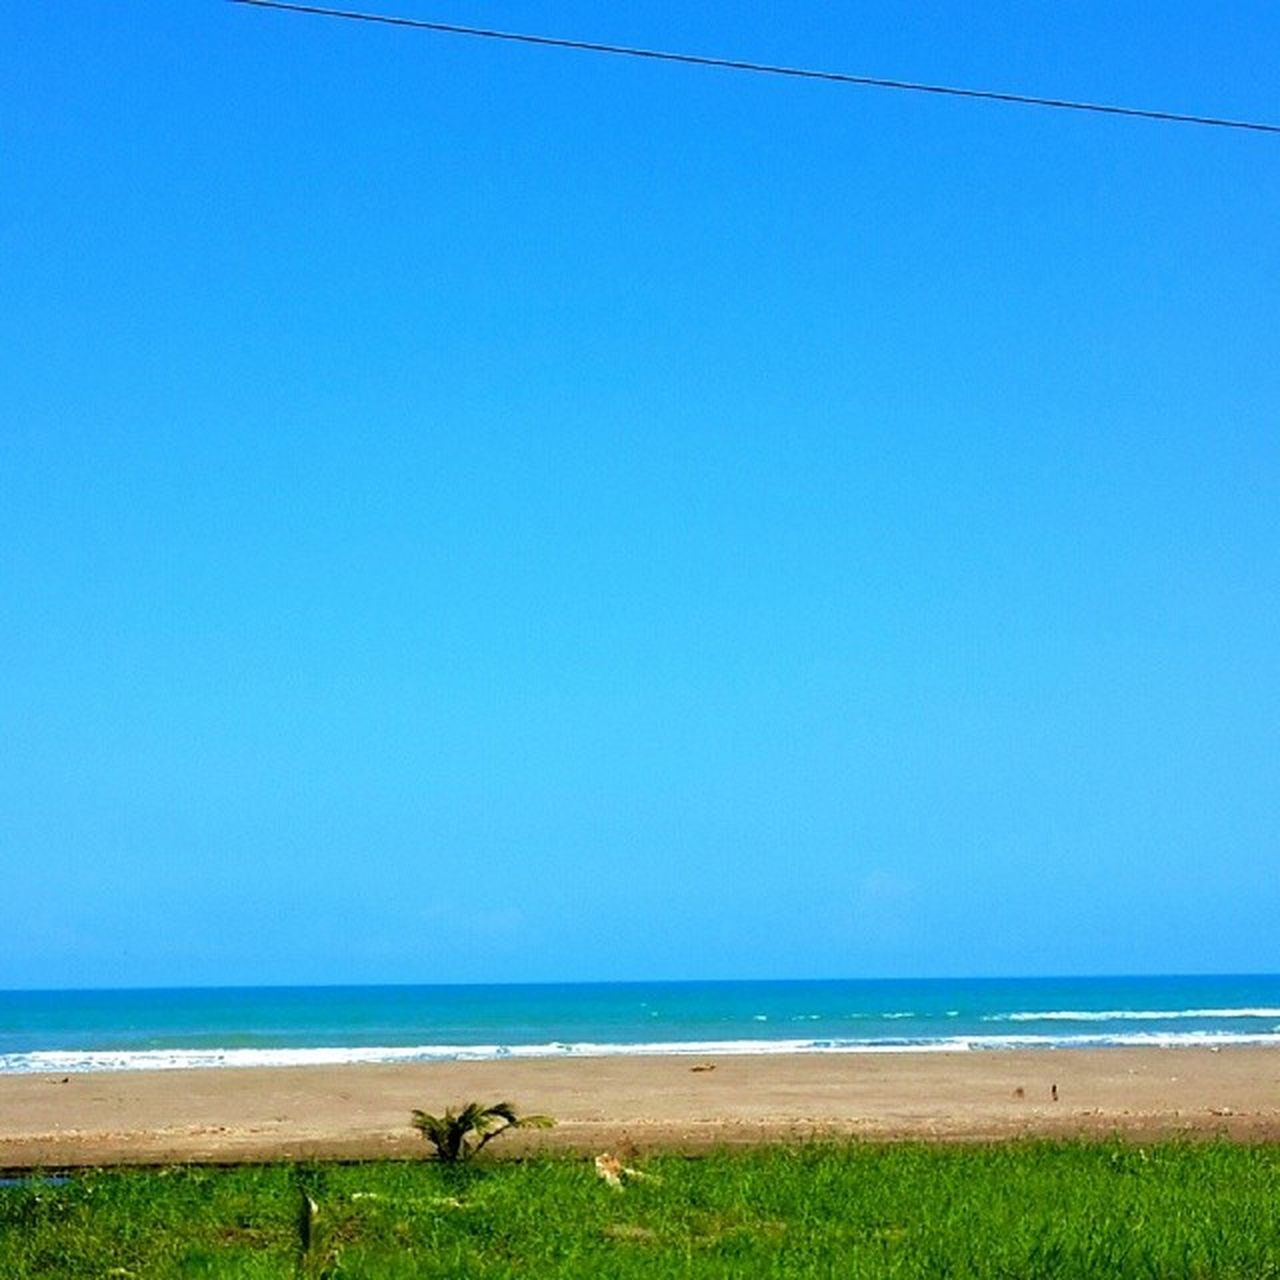 sea, horizon over water, copy space, water, beach, blue, nature, day, scenics, beauty in nature, one animal, outdoors, tranquil scene, clear sky, tranquility, sand, animal themes, animals in the wild, no people, sky, grass, bird, mammal